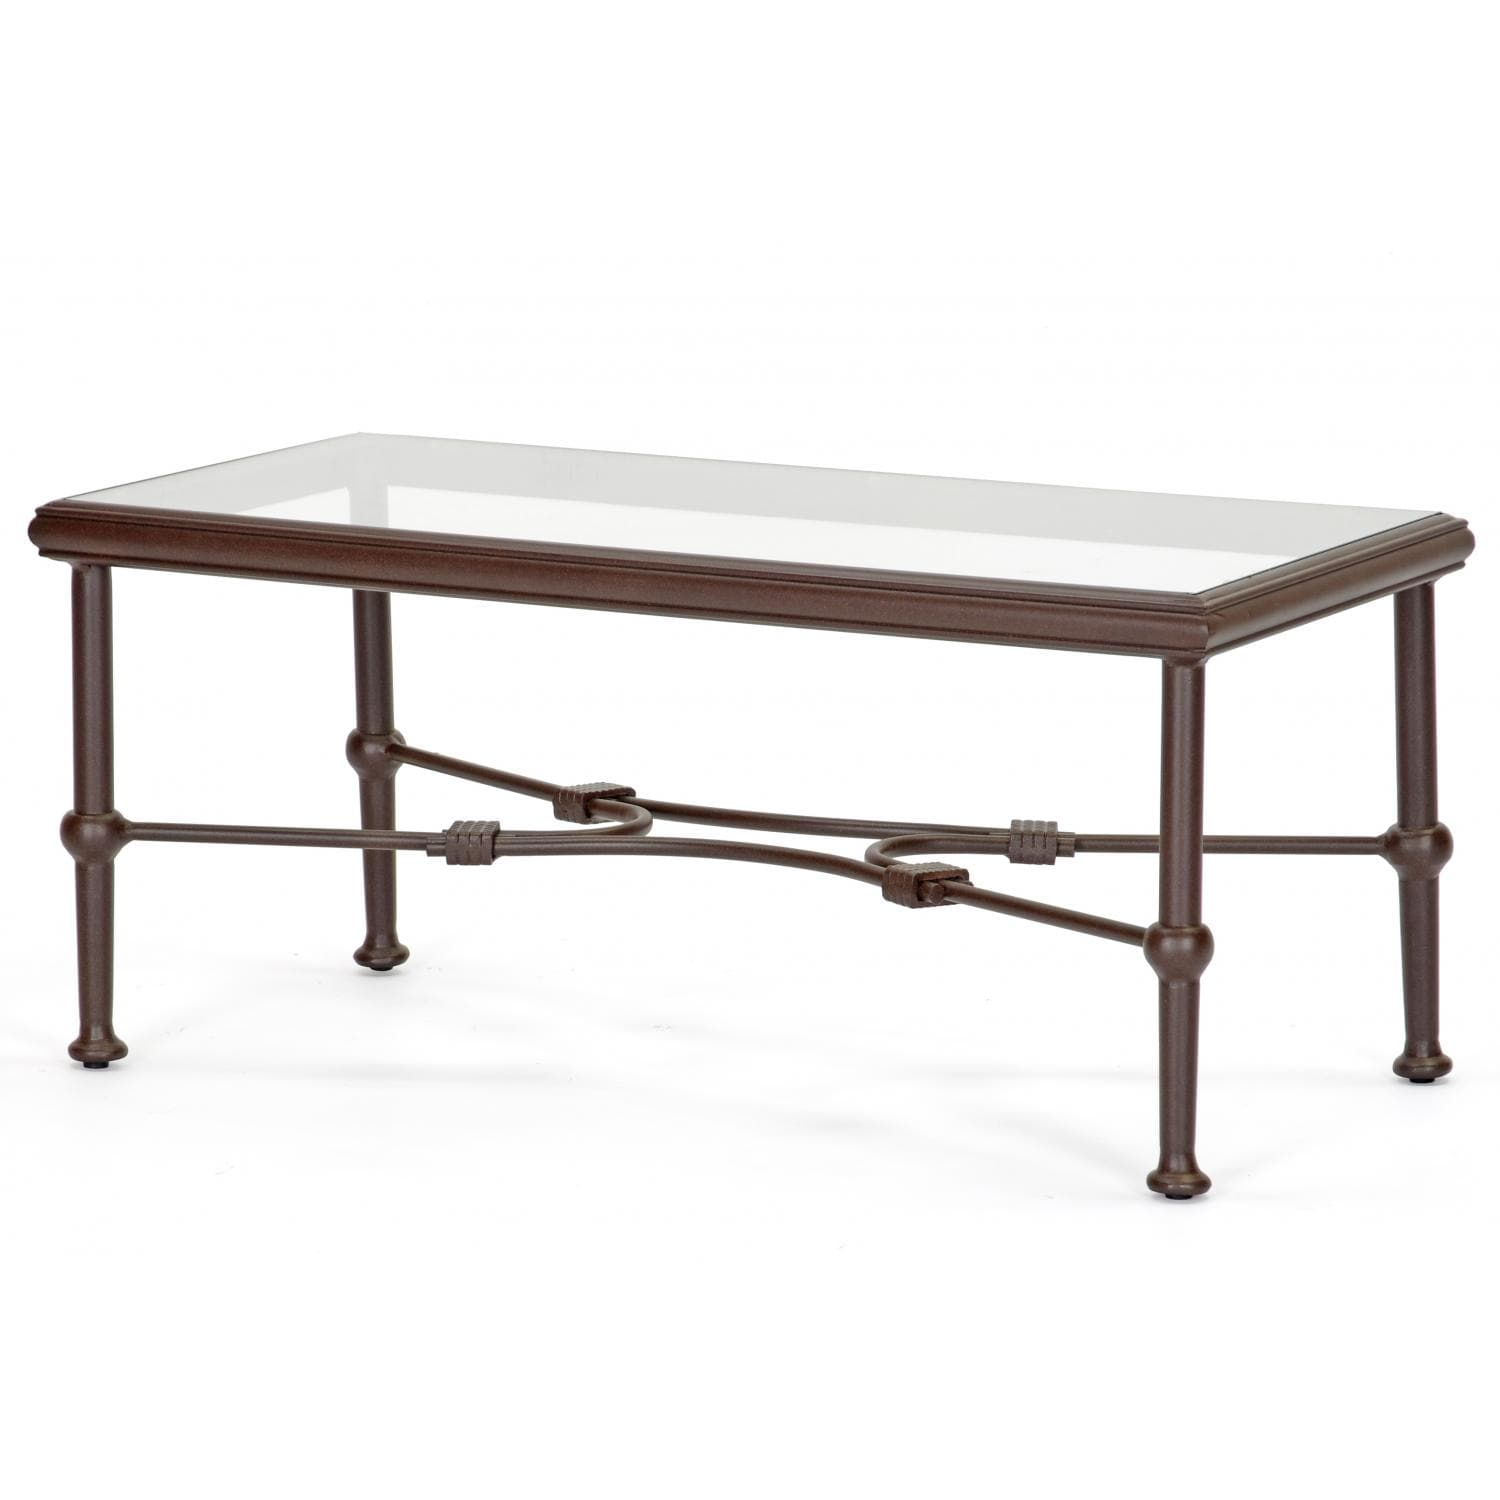 Aluminum Patio Coffee Table: Caluco Origin Cast Aluminum Patio Coffee Table With Glass